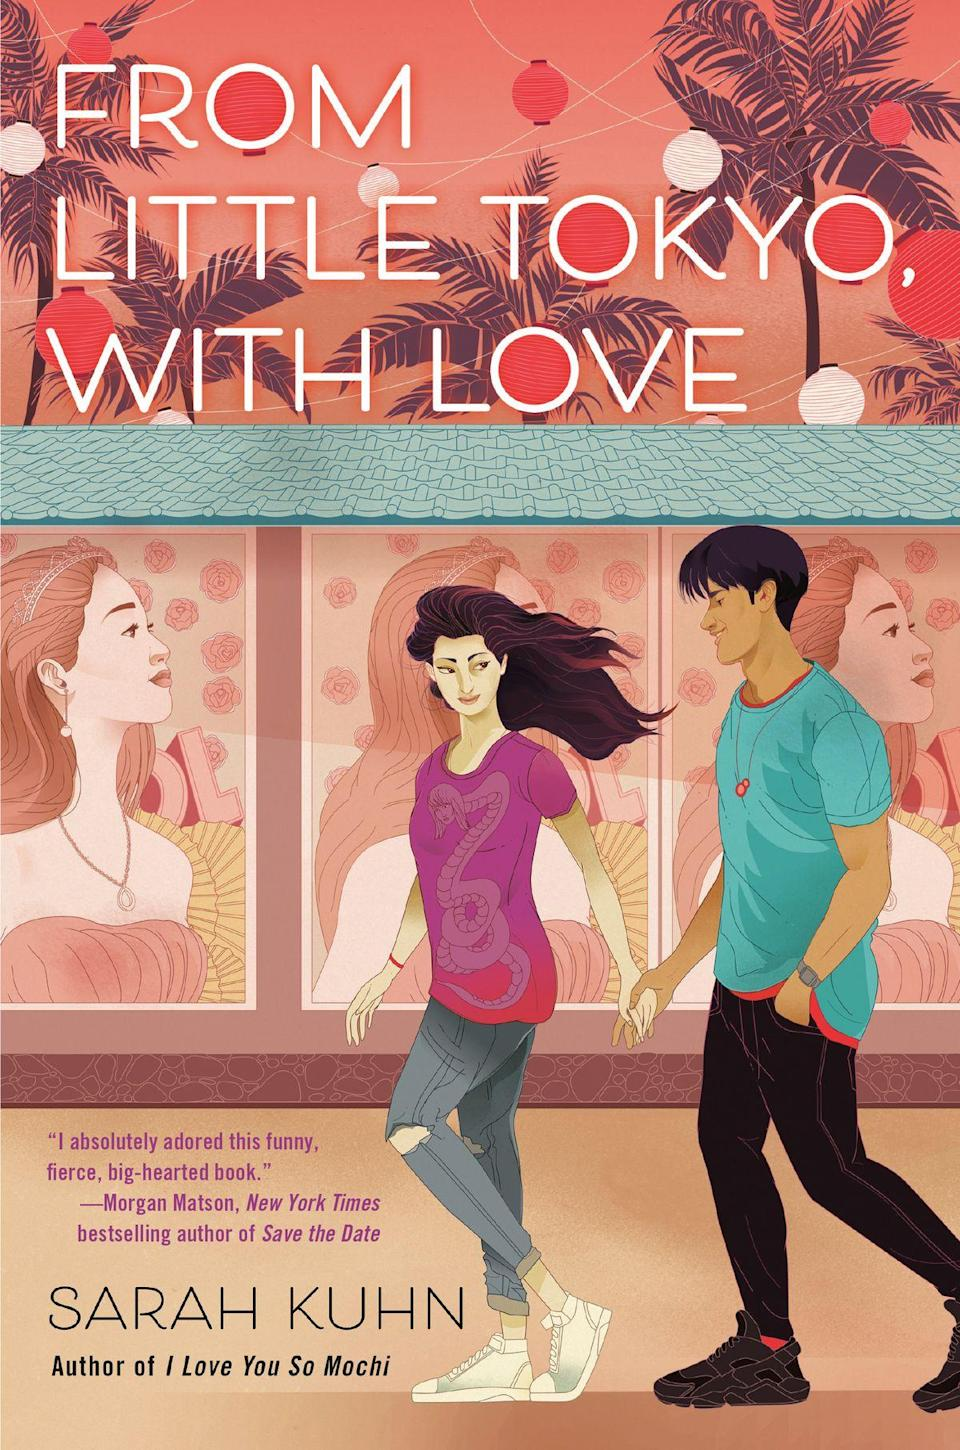 From Little Tokyo, With Love book cover by Sarah Kuhn